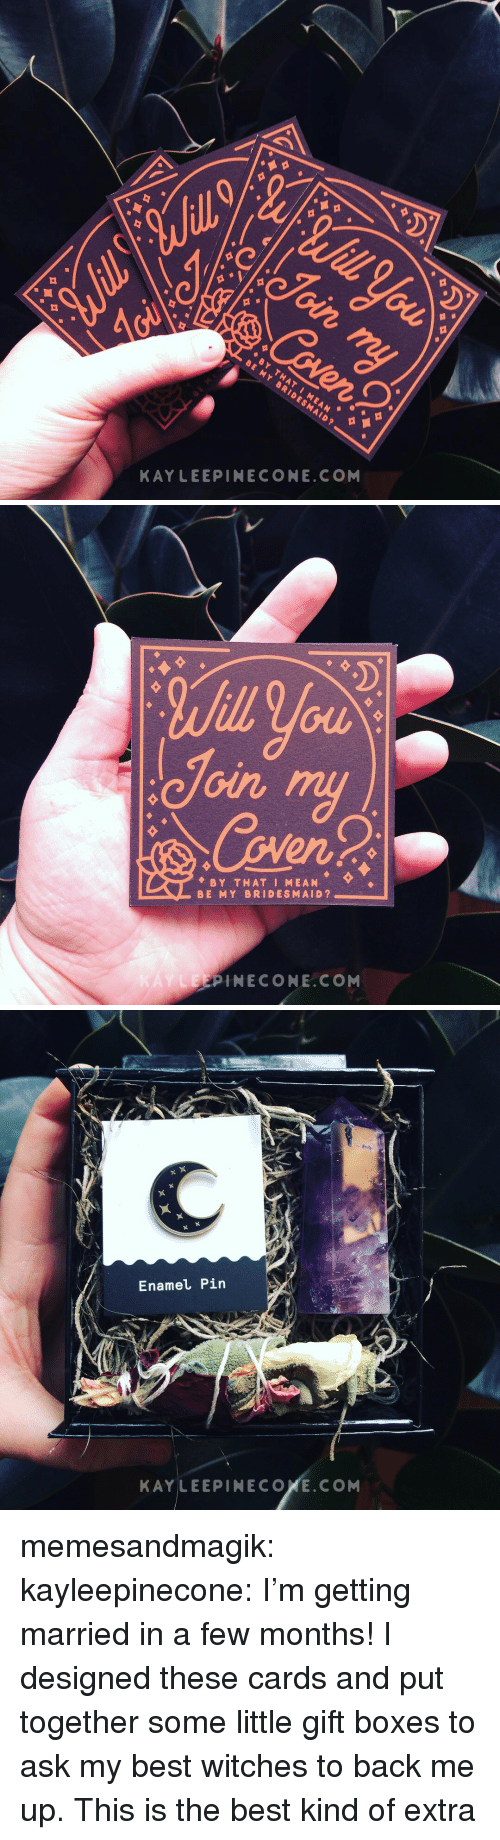 Tumblr, Best, and Blog: KAYLEEPINECONE.COM   Join  en  BY THAT I MEAN  BE MY BRIDESMAID?  LEEPINECONE.CONM   Enamel Pin  KAYLEEPINECOXE.COM memesandmagik: kayleepinecone:  I'm getting married in a few months! I designed these cards and put together some little gift boxes to ask my best witches to back me up.  This is the best kind of extra